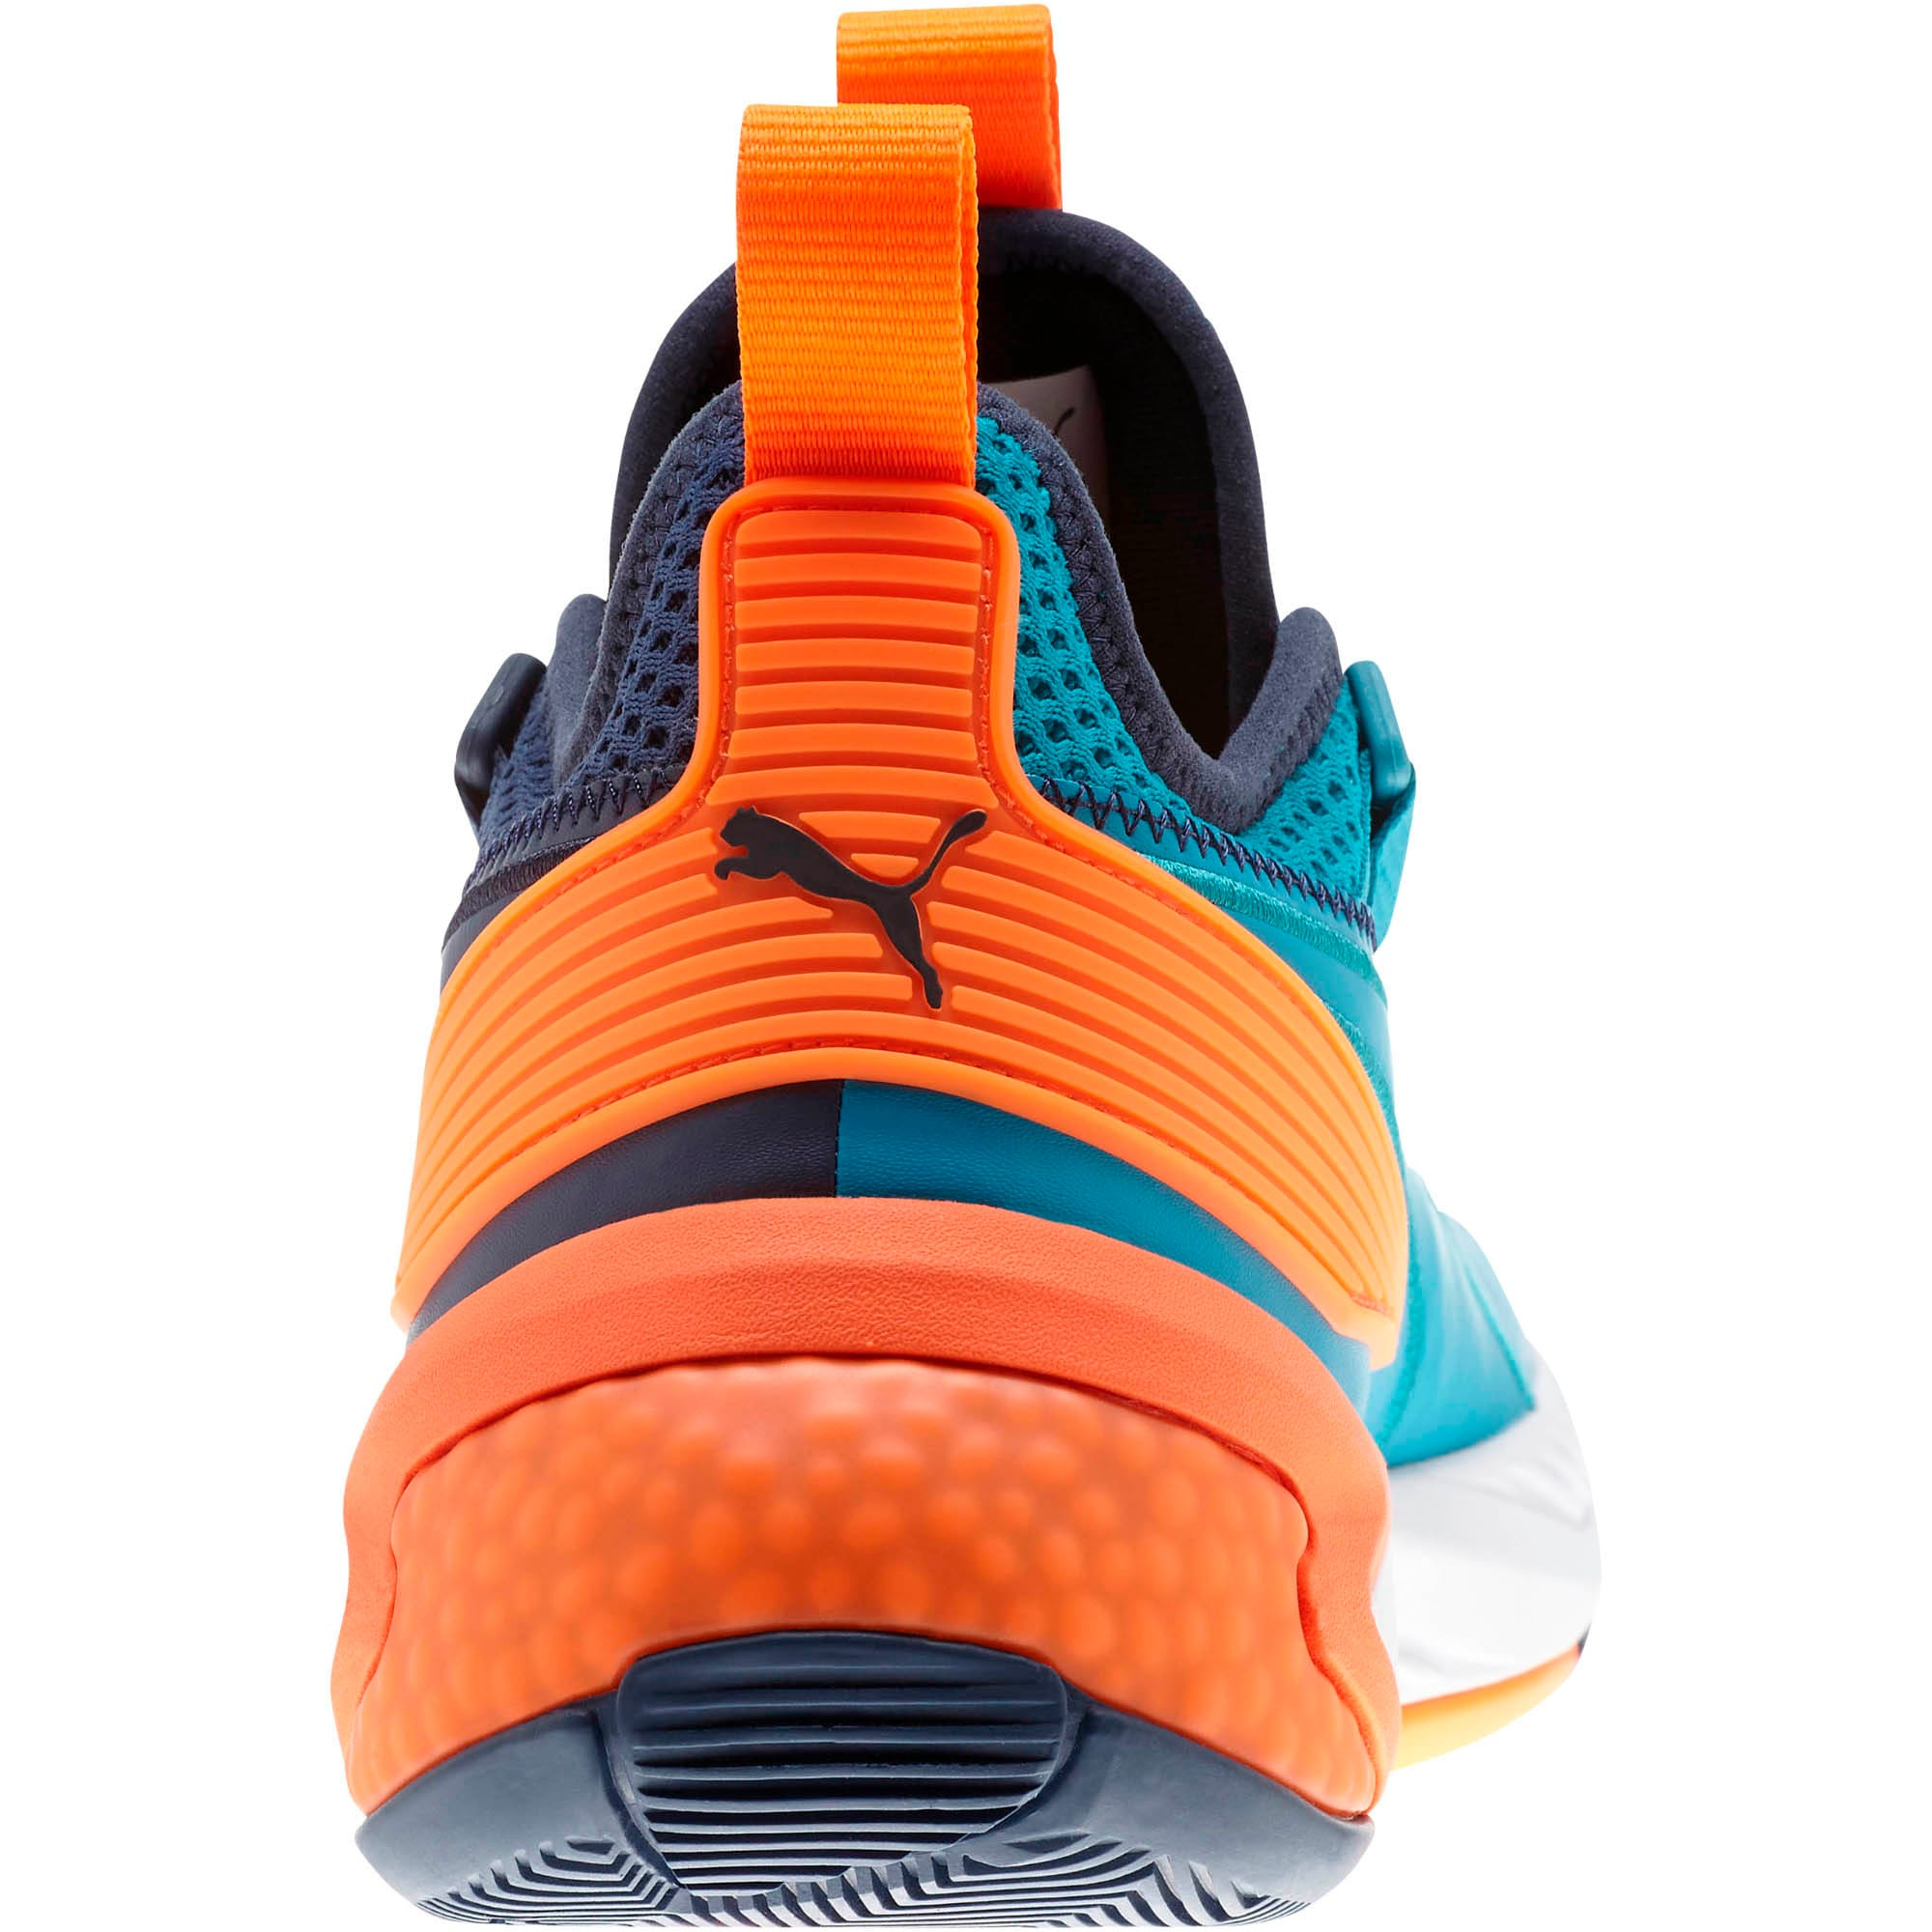 Thumbnail 4 of Uproar Charlotte ASG Fade Basketball Shoes, Orange- PURPLE, medium